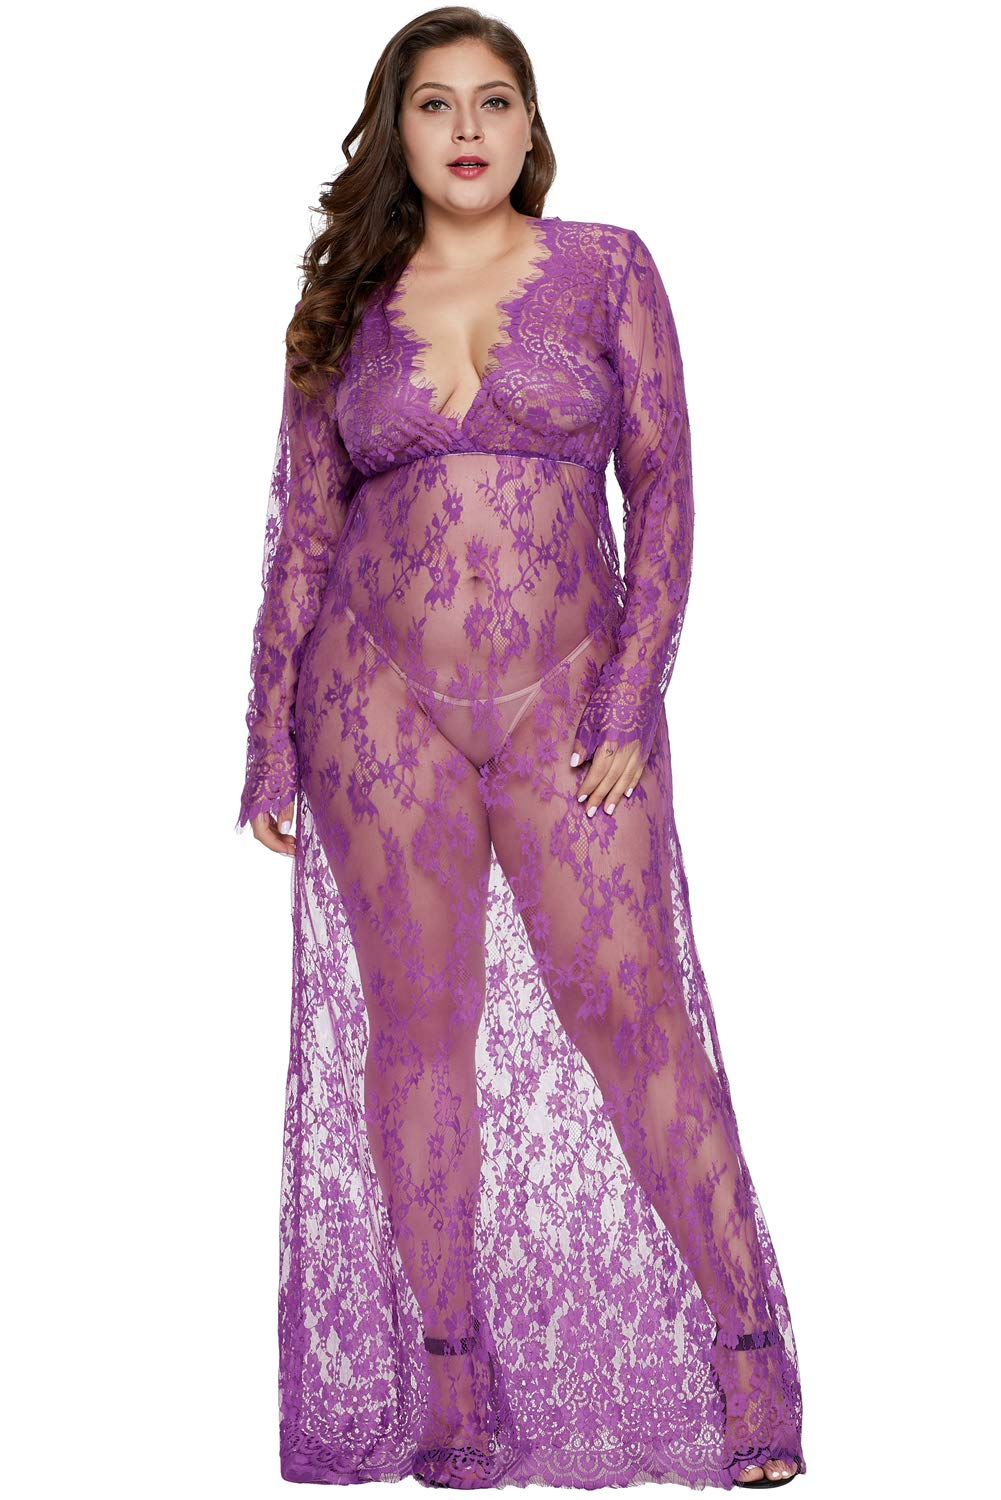 cecdf356b8 Dean Fast Women Plus Size Floral Lace Nightgown Long Lingerie Sleepwear  Chemise product image